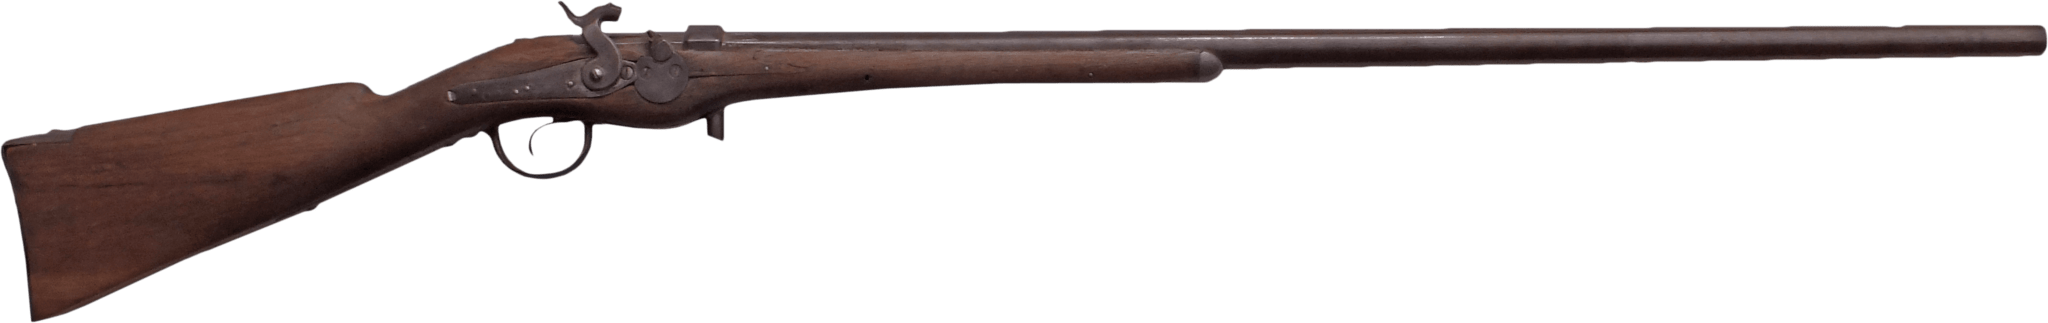 ONE OF A KIND AMERICAN BREECH LOADING RIFLE C.1840-1850 - Fagan Arms